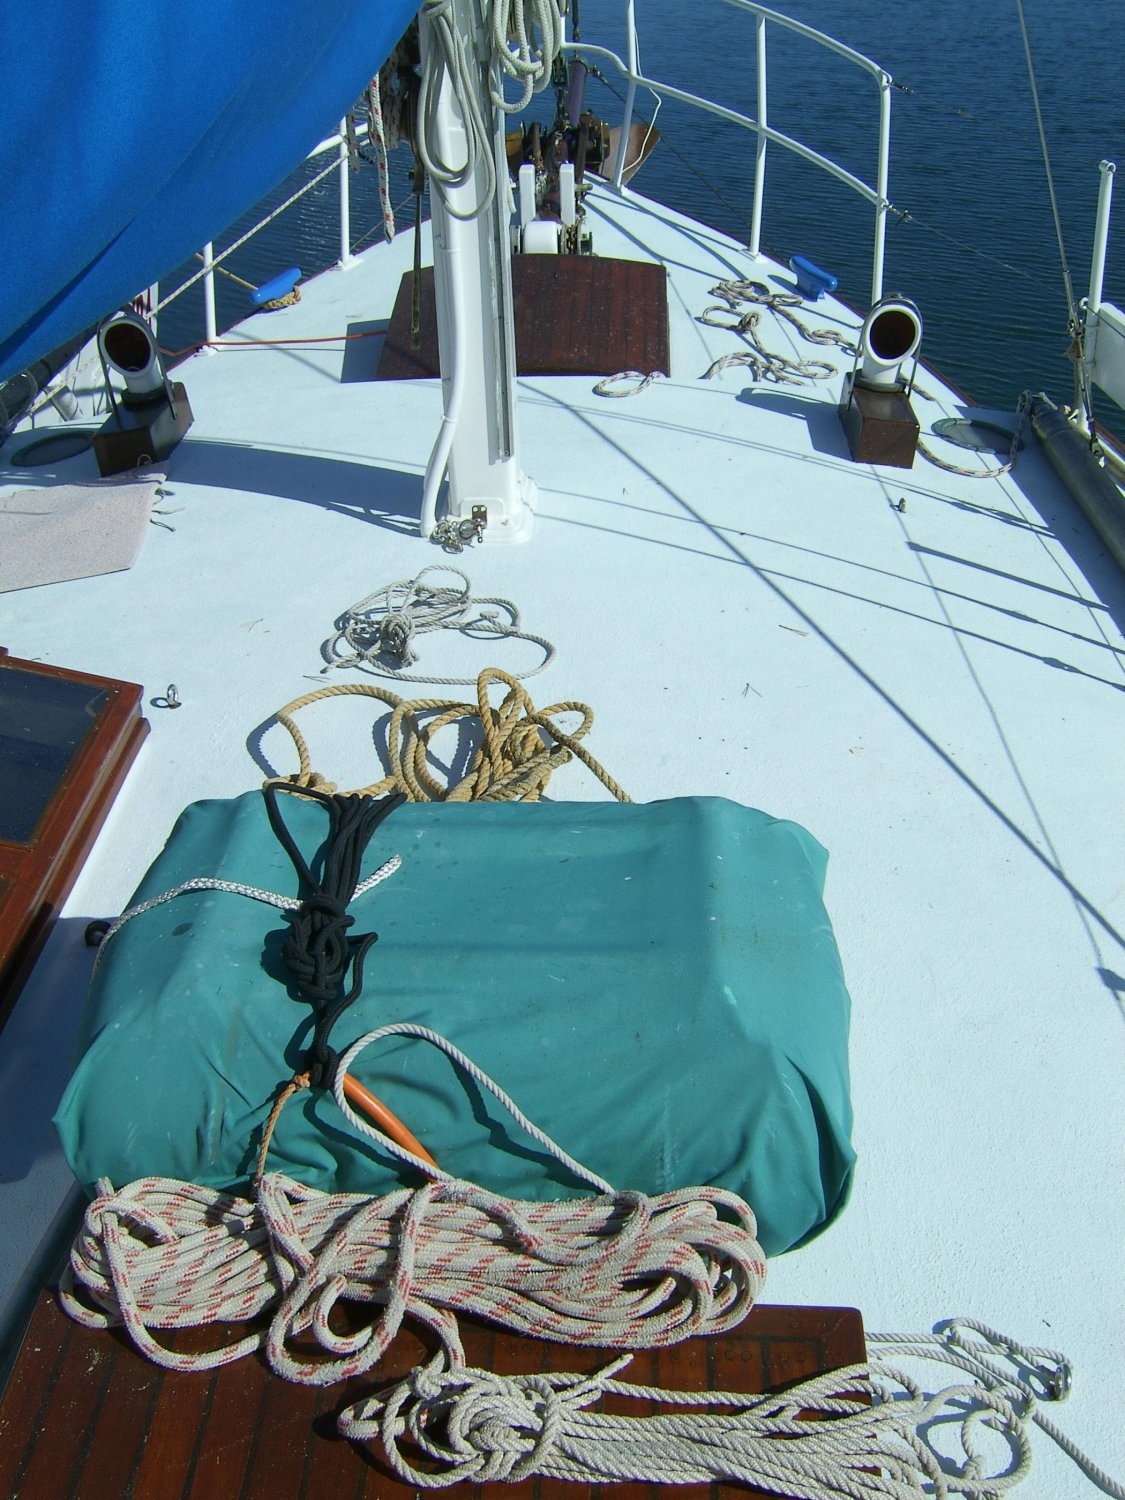 Photos for selling a boat - don't forget the deck